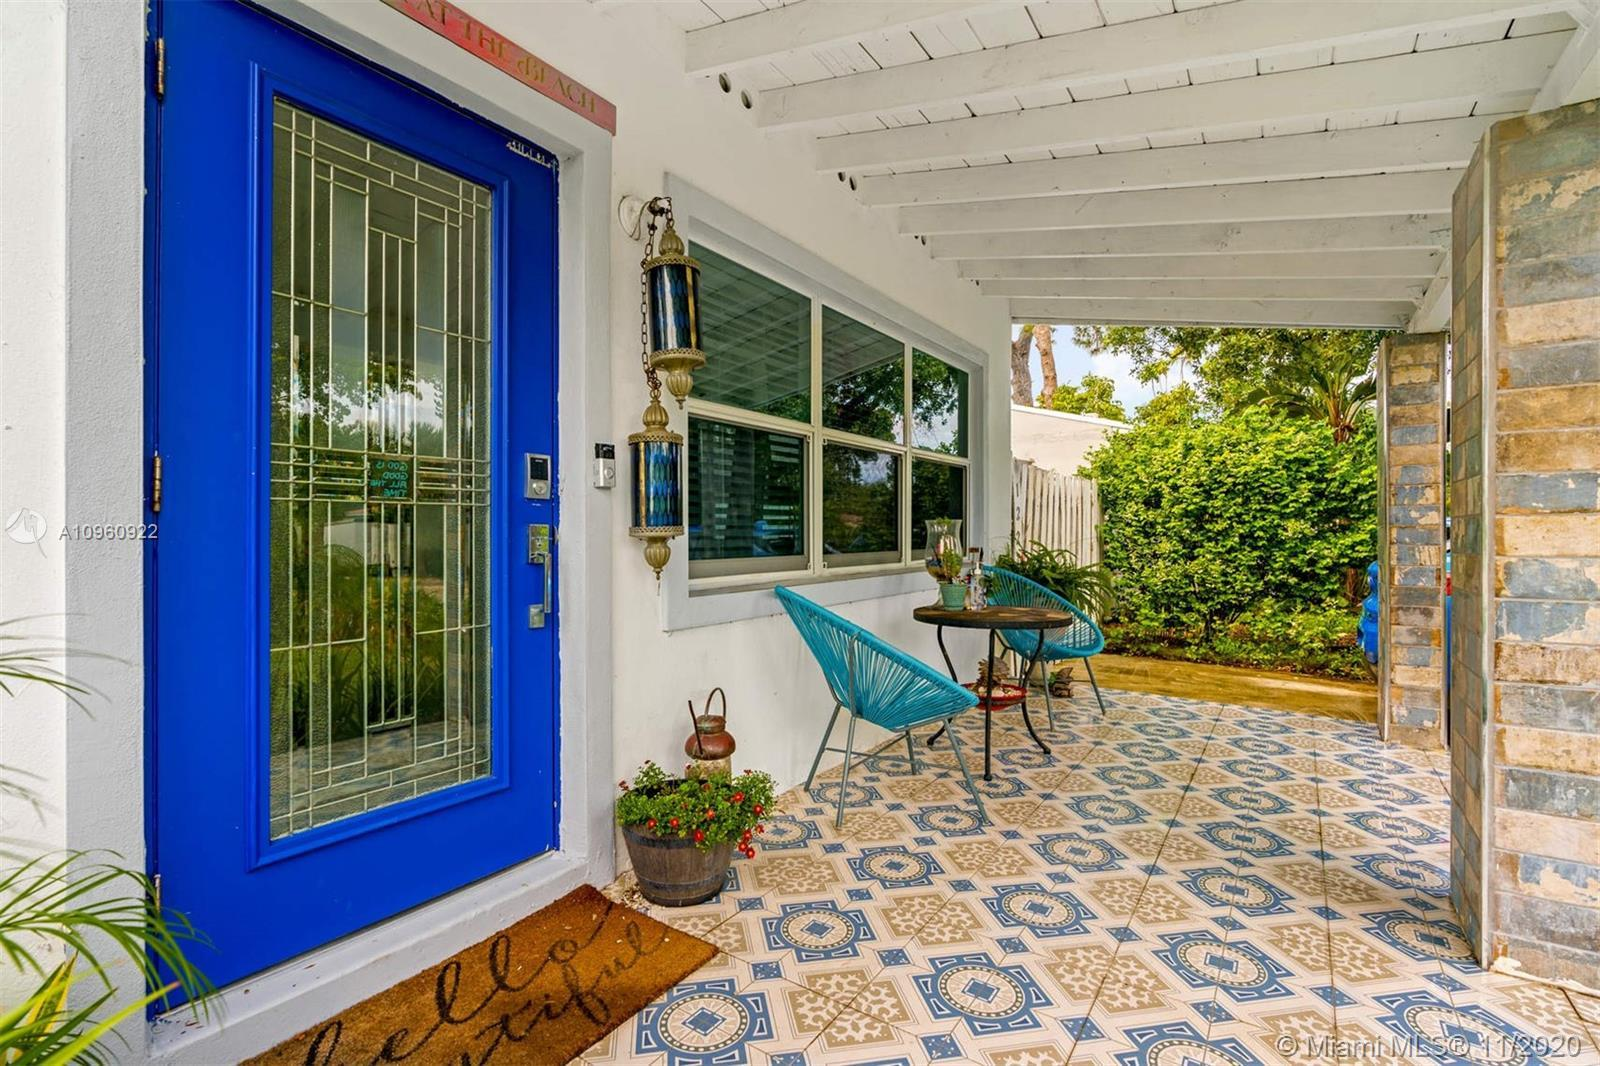 Welcoming and Charming house, completely remodeled, sitting on 6750 Sf lot. Featuring two spacious b